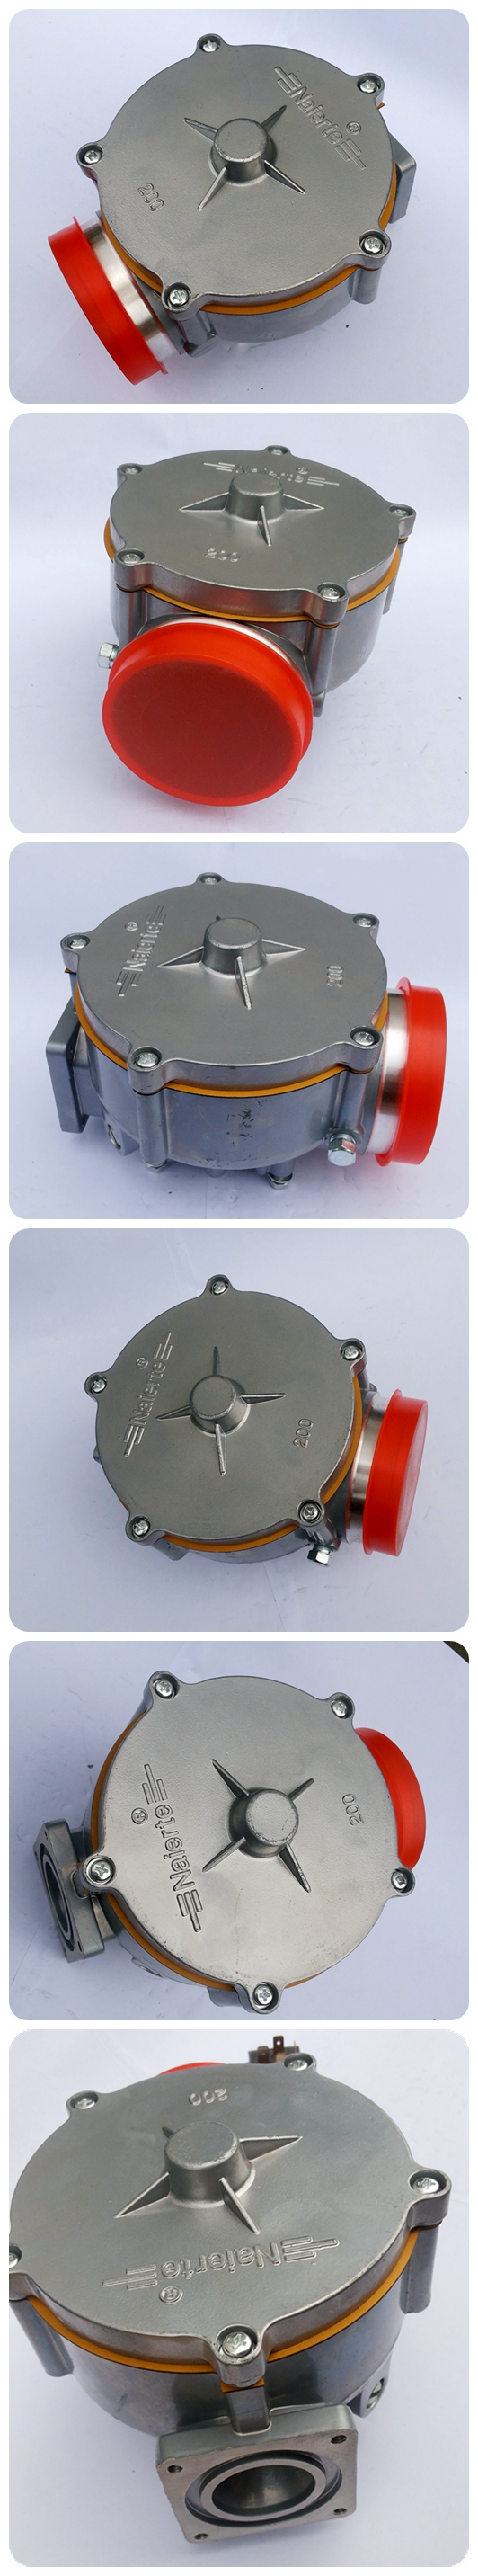 CNG LNG NGV vaporizer/carburetor for auto engine